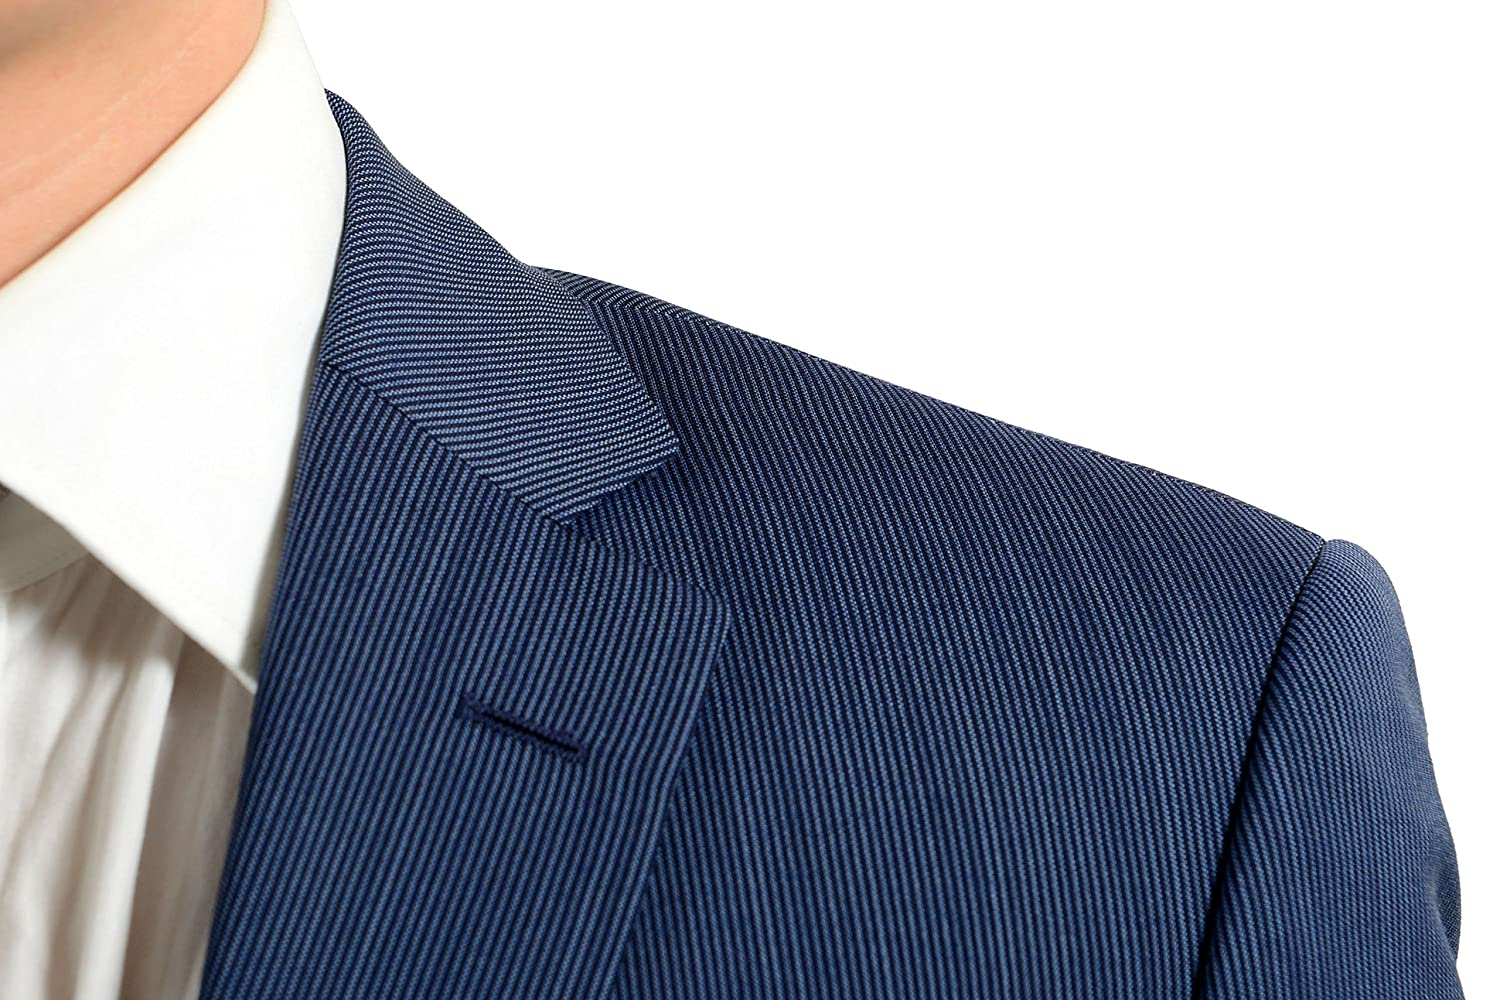 88be4a5f0 ... Hugo Boss Paolini1/Movio1US Mens 100% Wool Blue Two Button Suit SZ US  36S ...